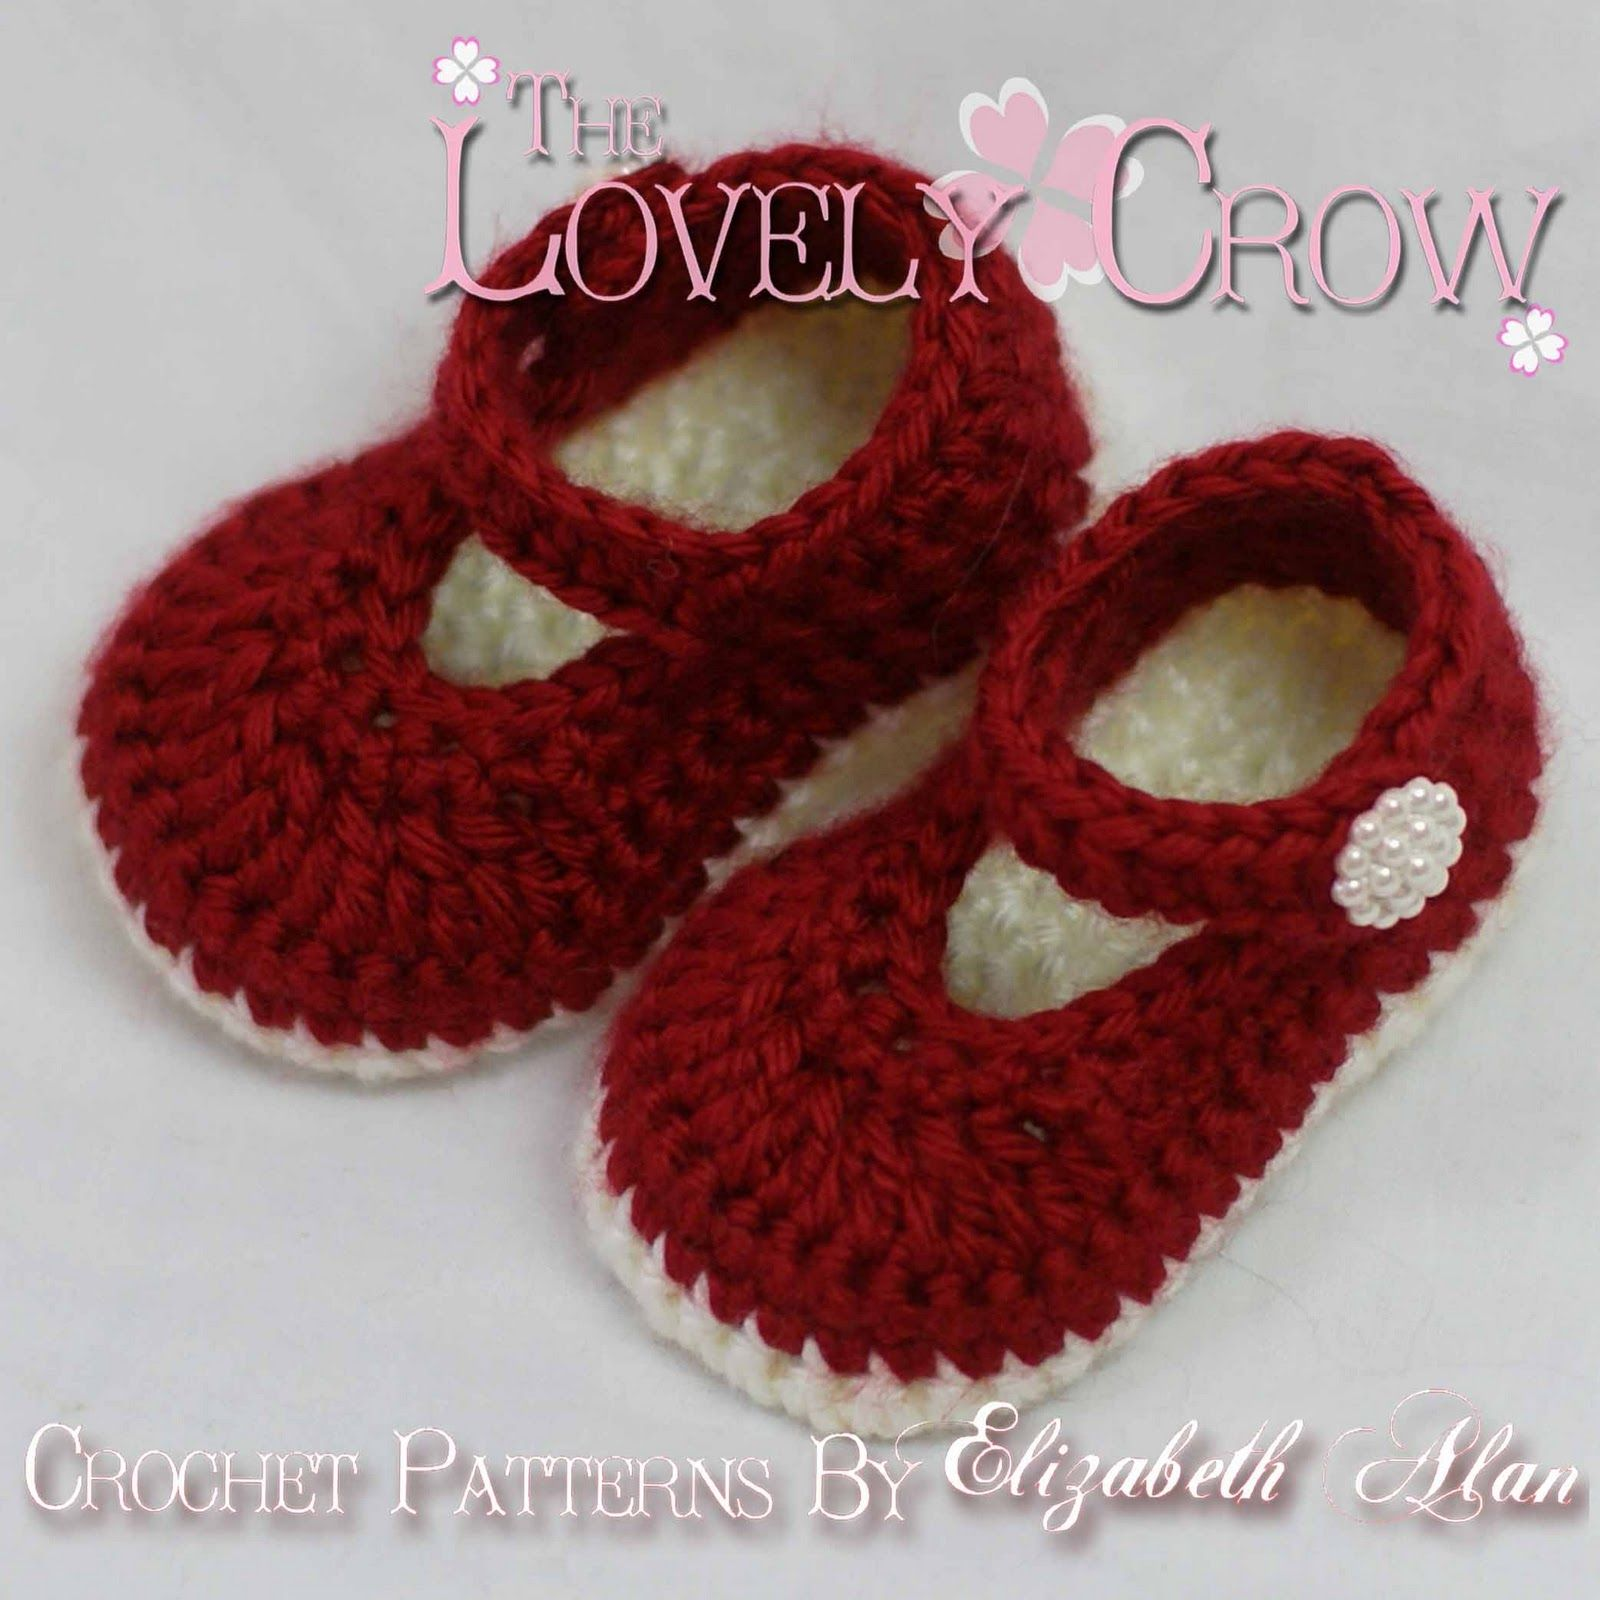 Free Crochet Patterns To Print | TheLovelyCrow: Crochet baby booties ...